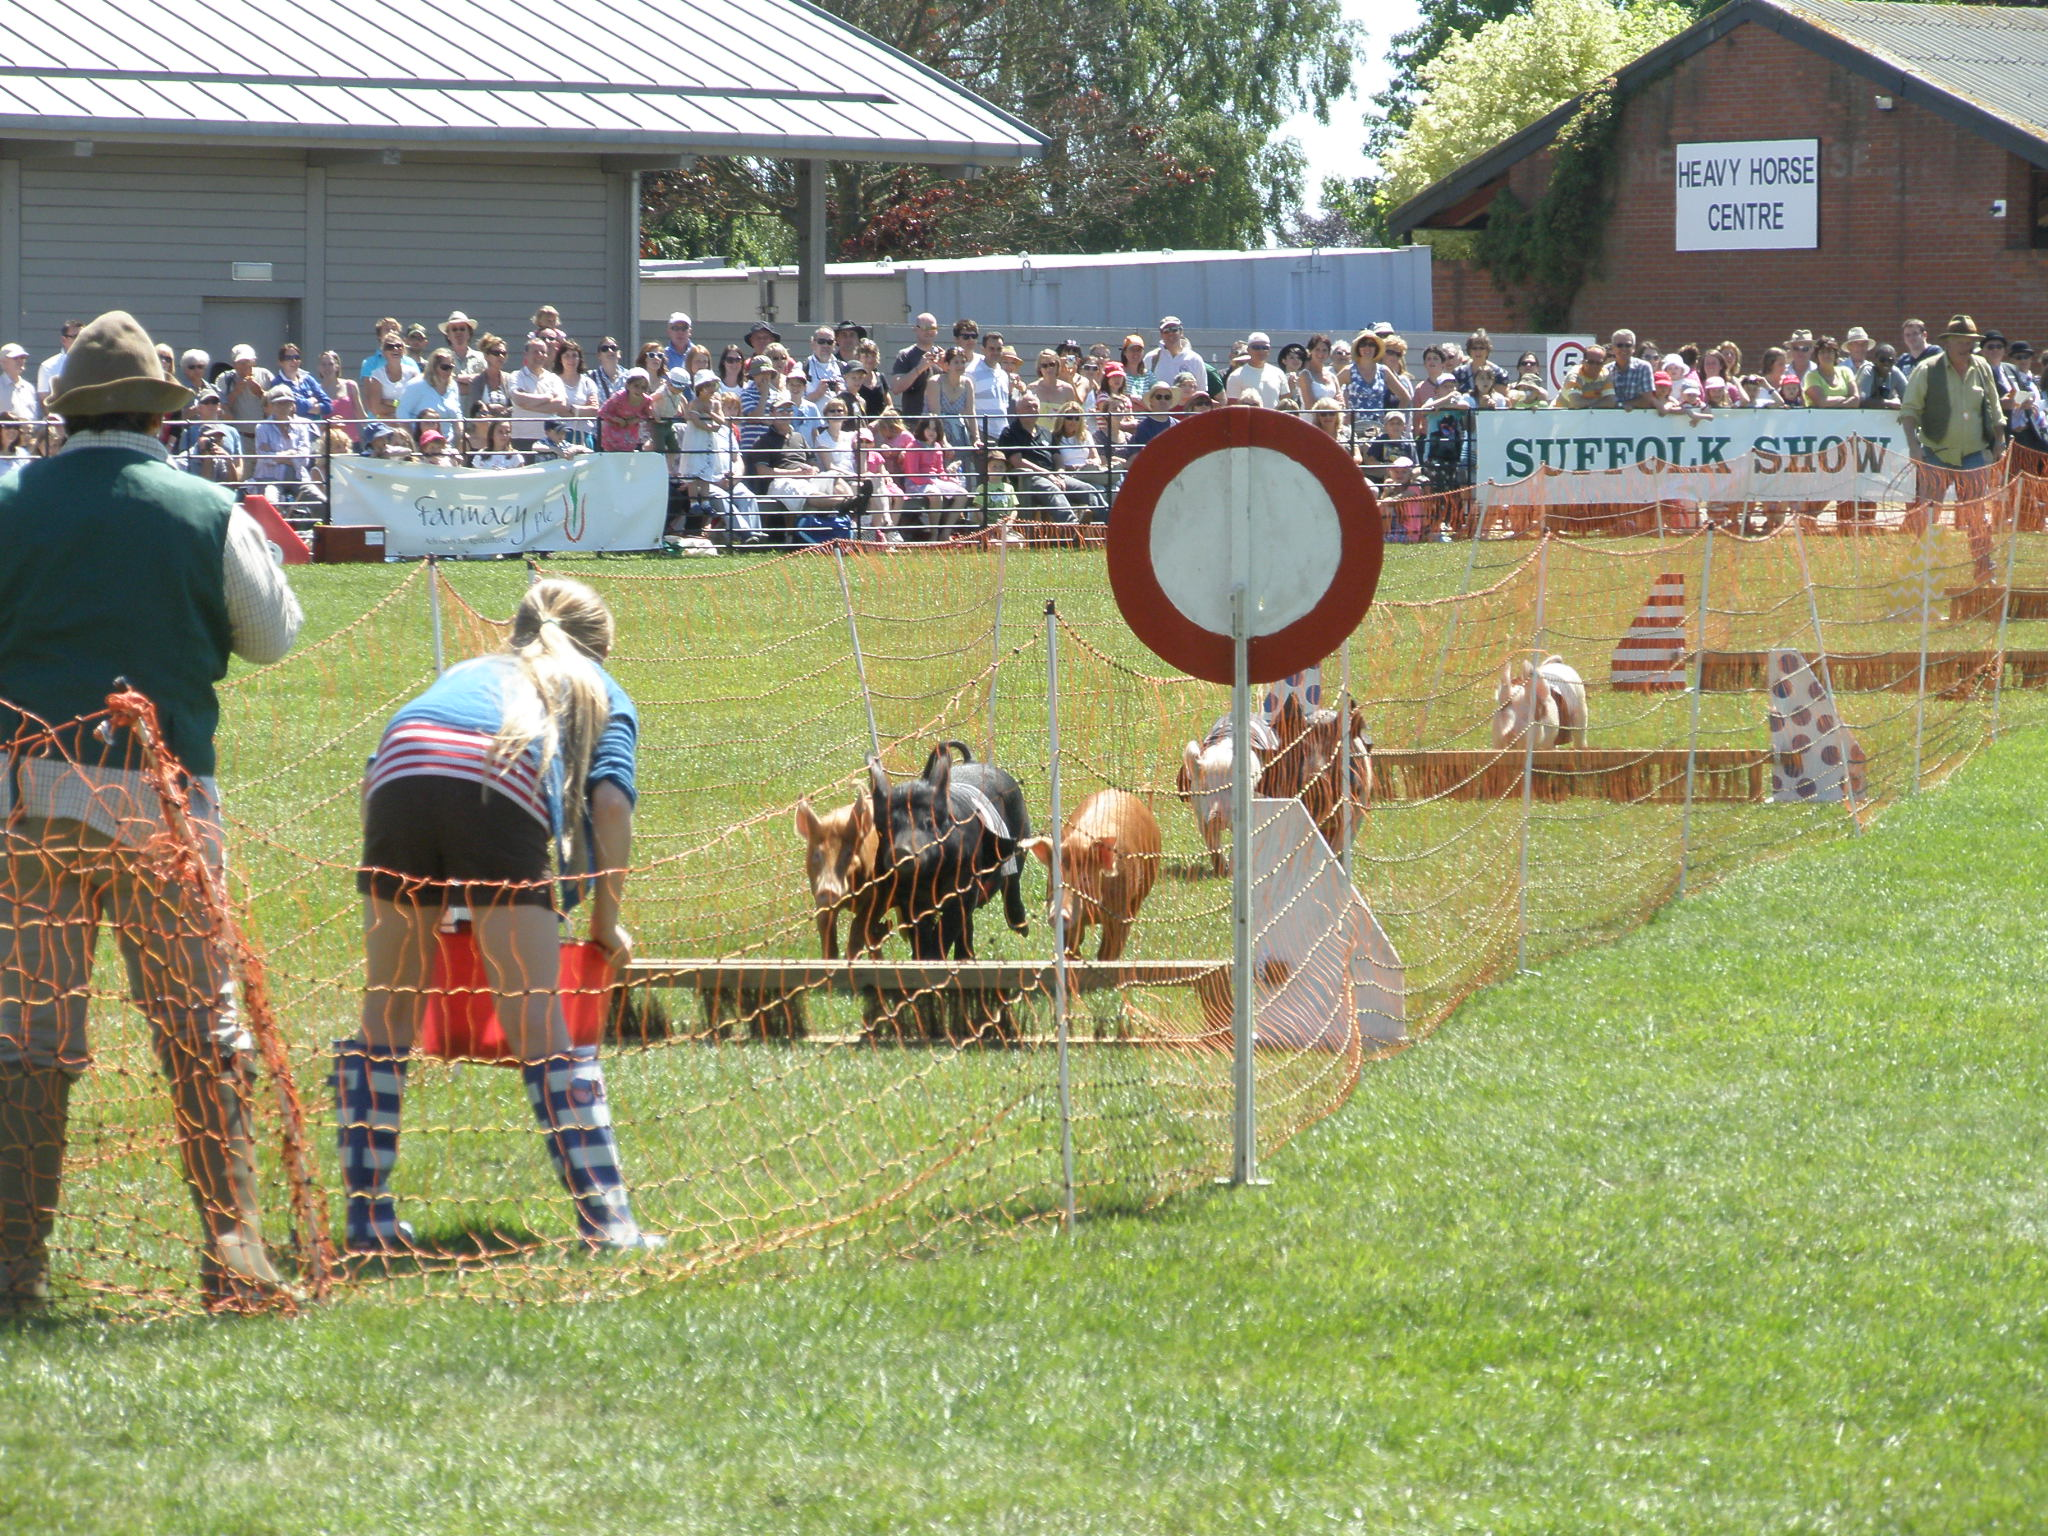 The Suffolk Show